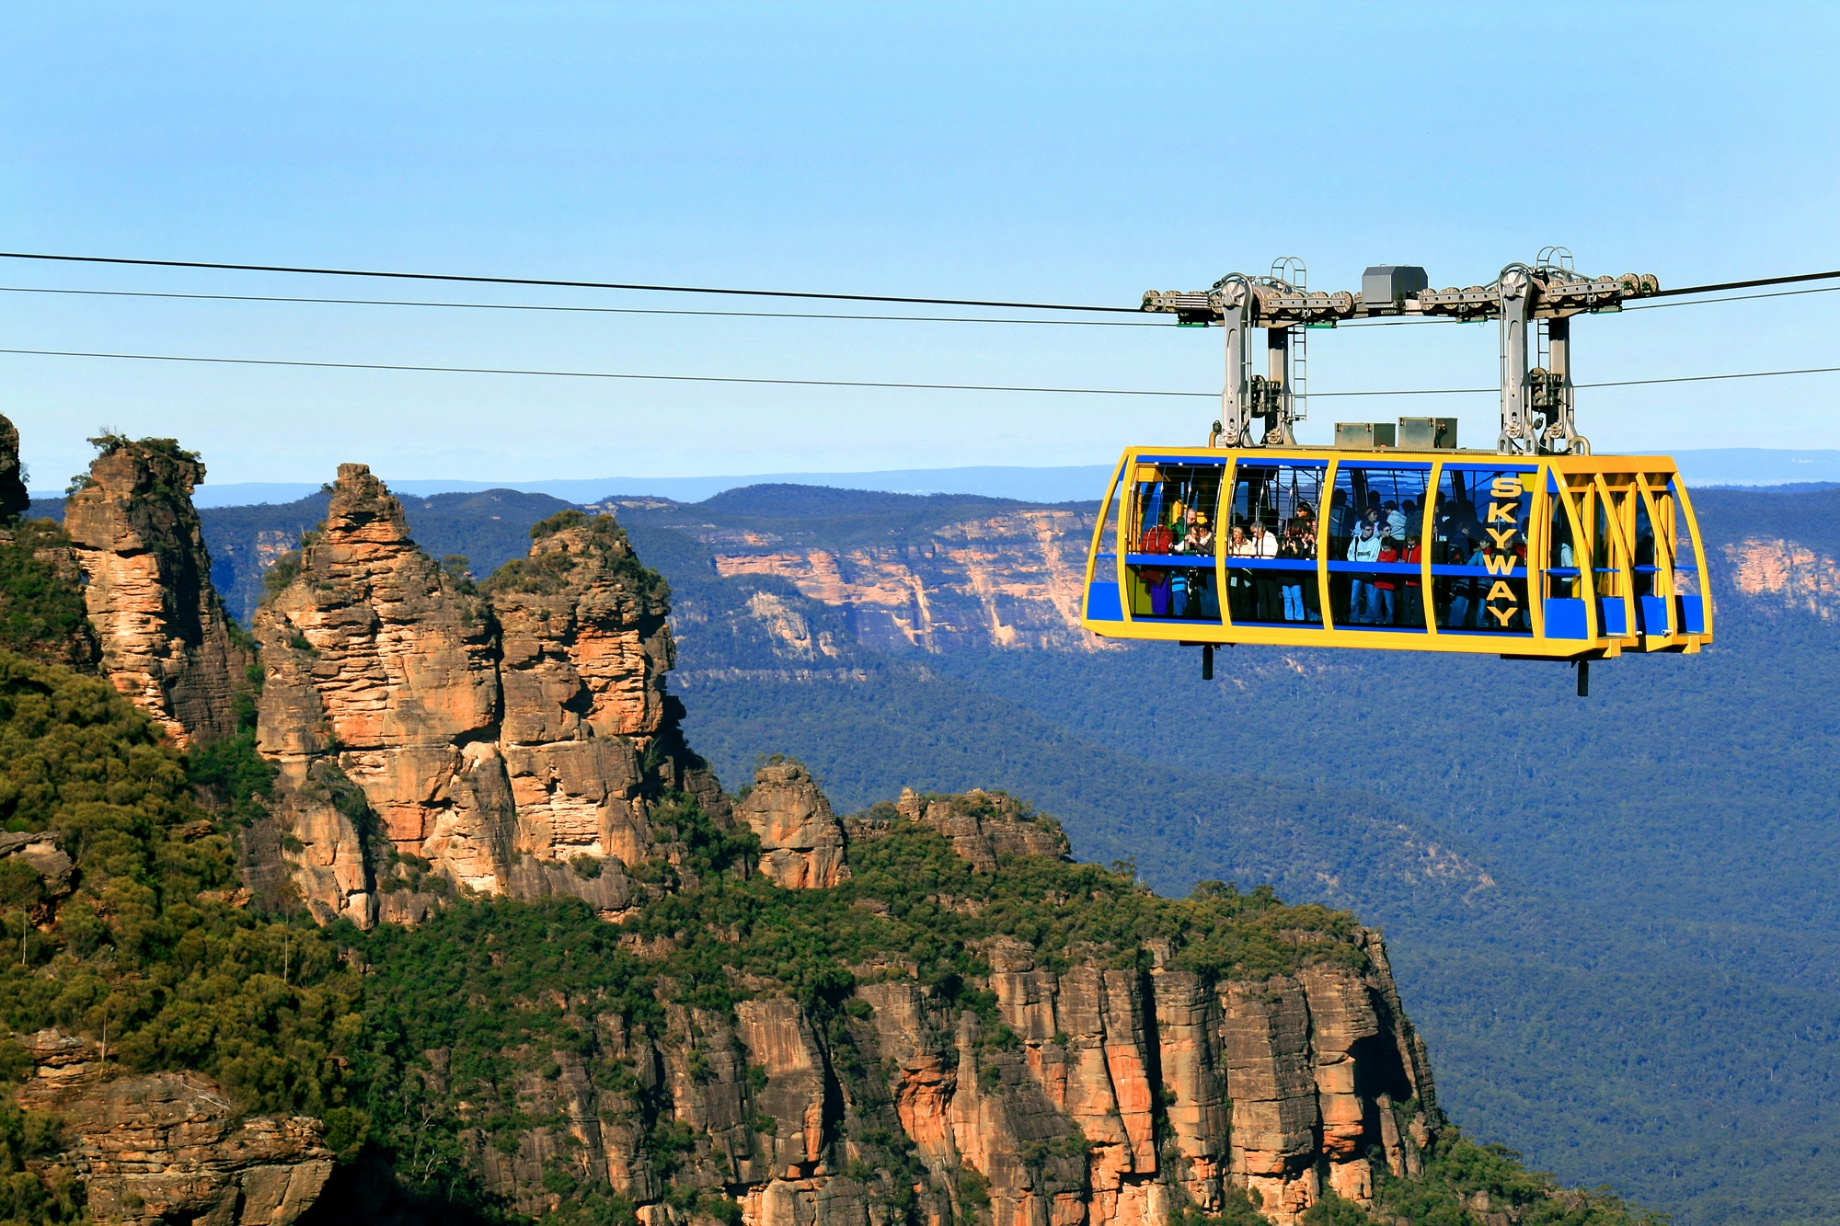 Image from Blue Mountains Australia